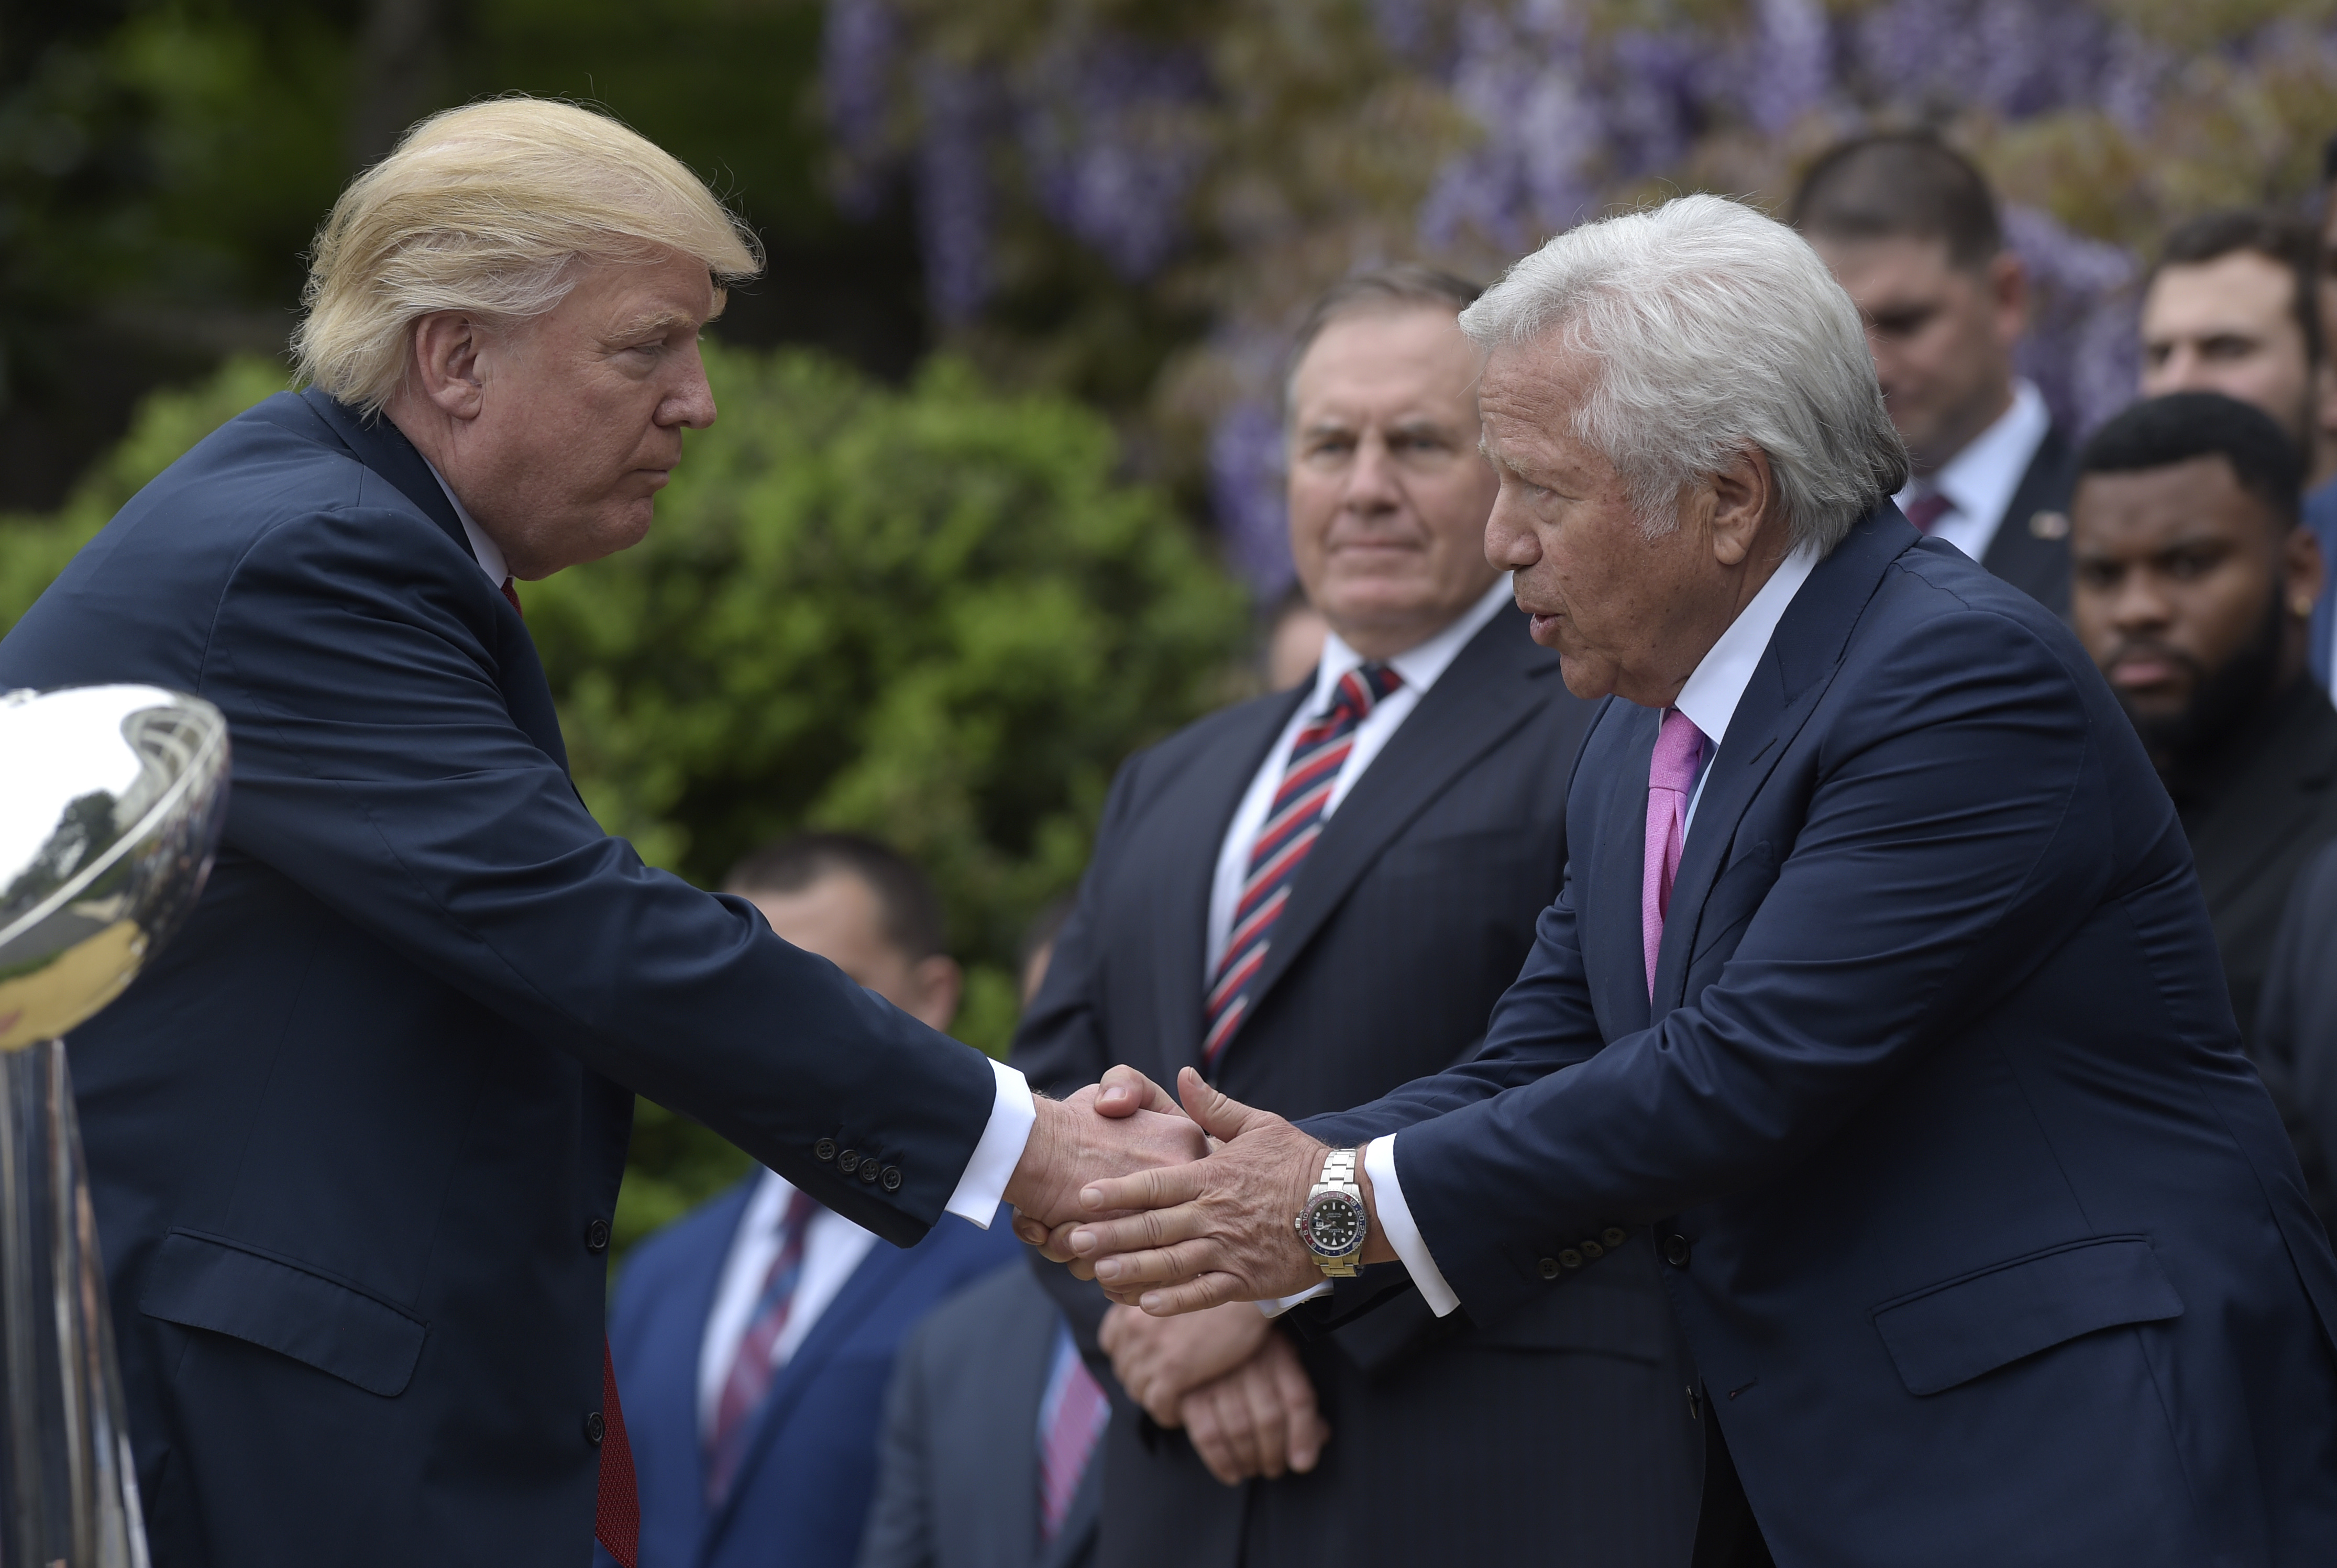 President Donald Trump shakes hands with New England Patriots owner Robert Kraft during a ceremony on the South Lawn of the White House in Washington, DC on April 19, 2017, where the president honored the Super Bowl Champion New England Patriots for their Super Bowl LI victory.